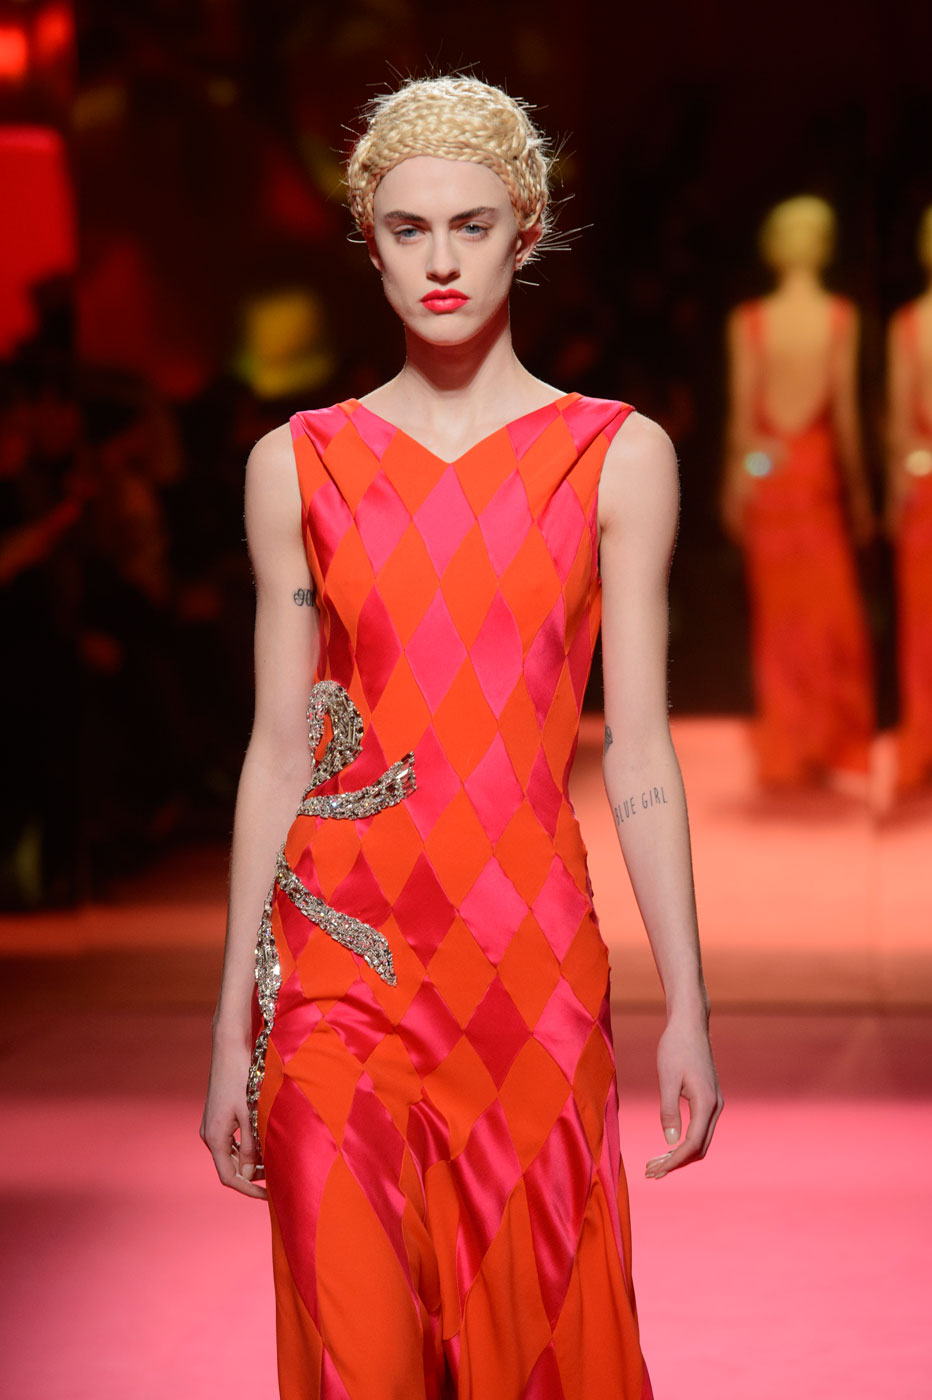 Schiaparelli-fashion-runway-show-haute-couture-paris-spring-summer-2015-the-impression-43